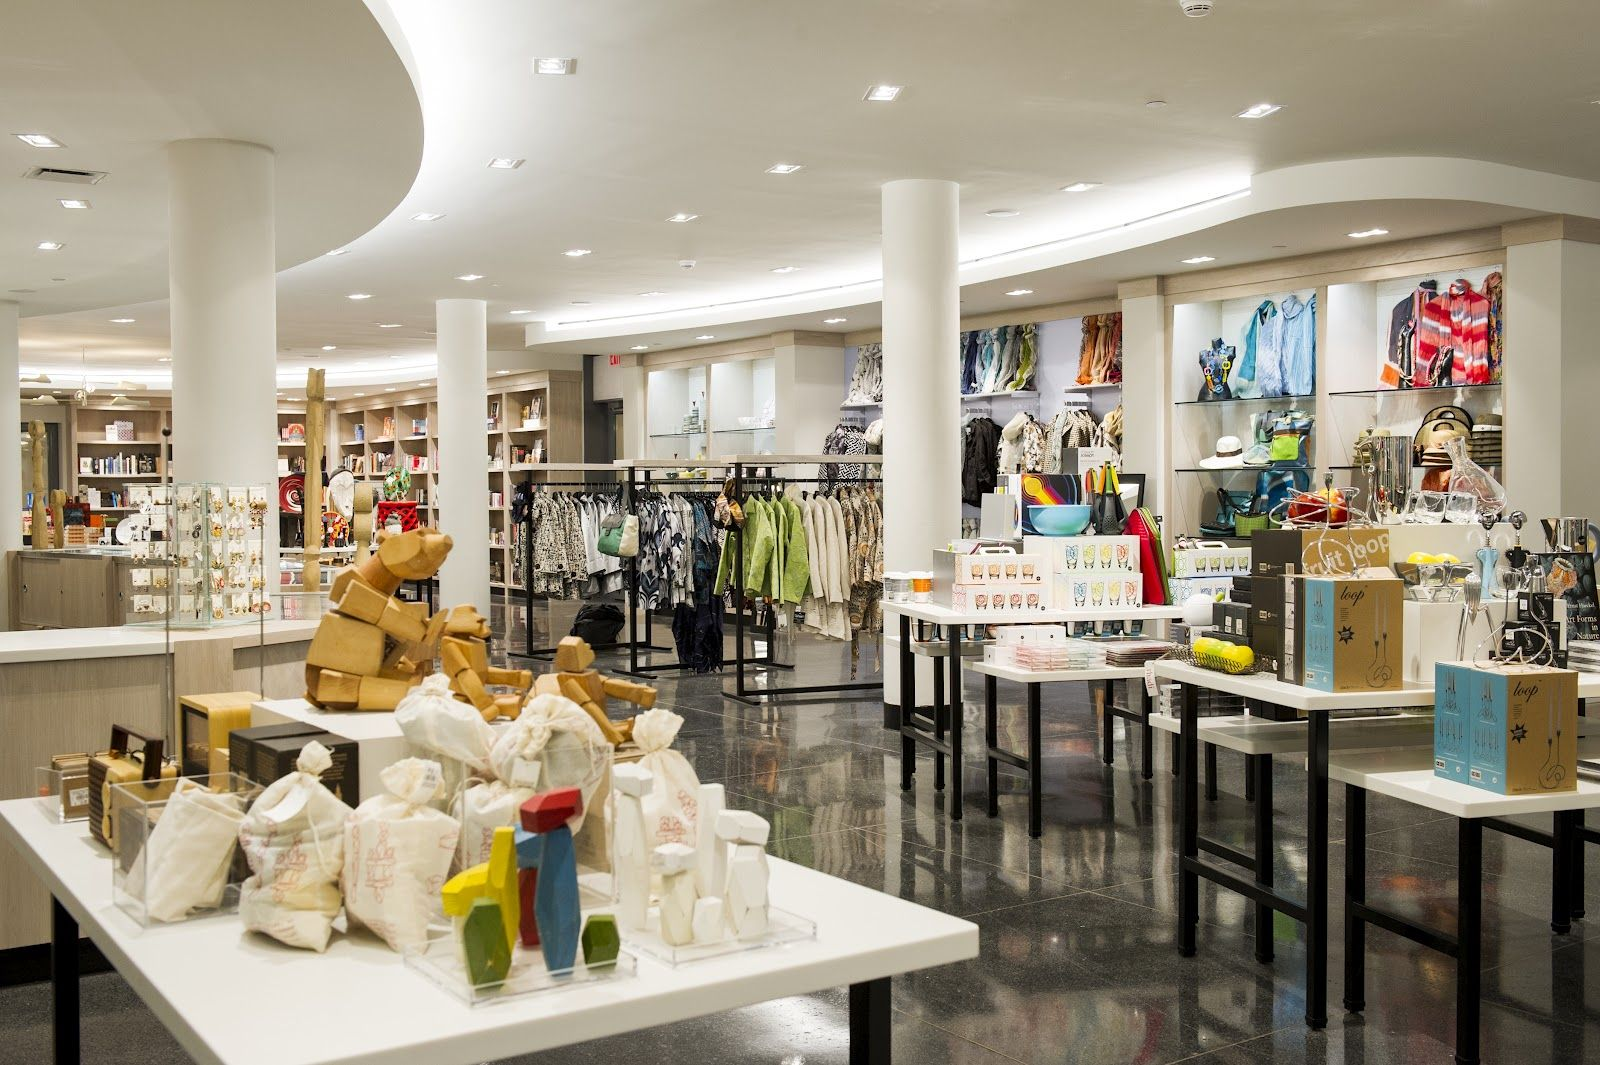 Although I Think The Merchandise Here And The Colors Are Too Busy And Cluttered I Like The Space Itself The Archit Beautiful Home Designs House Design Home